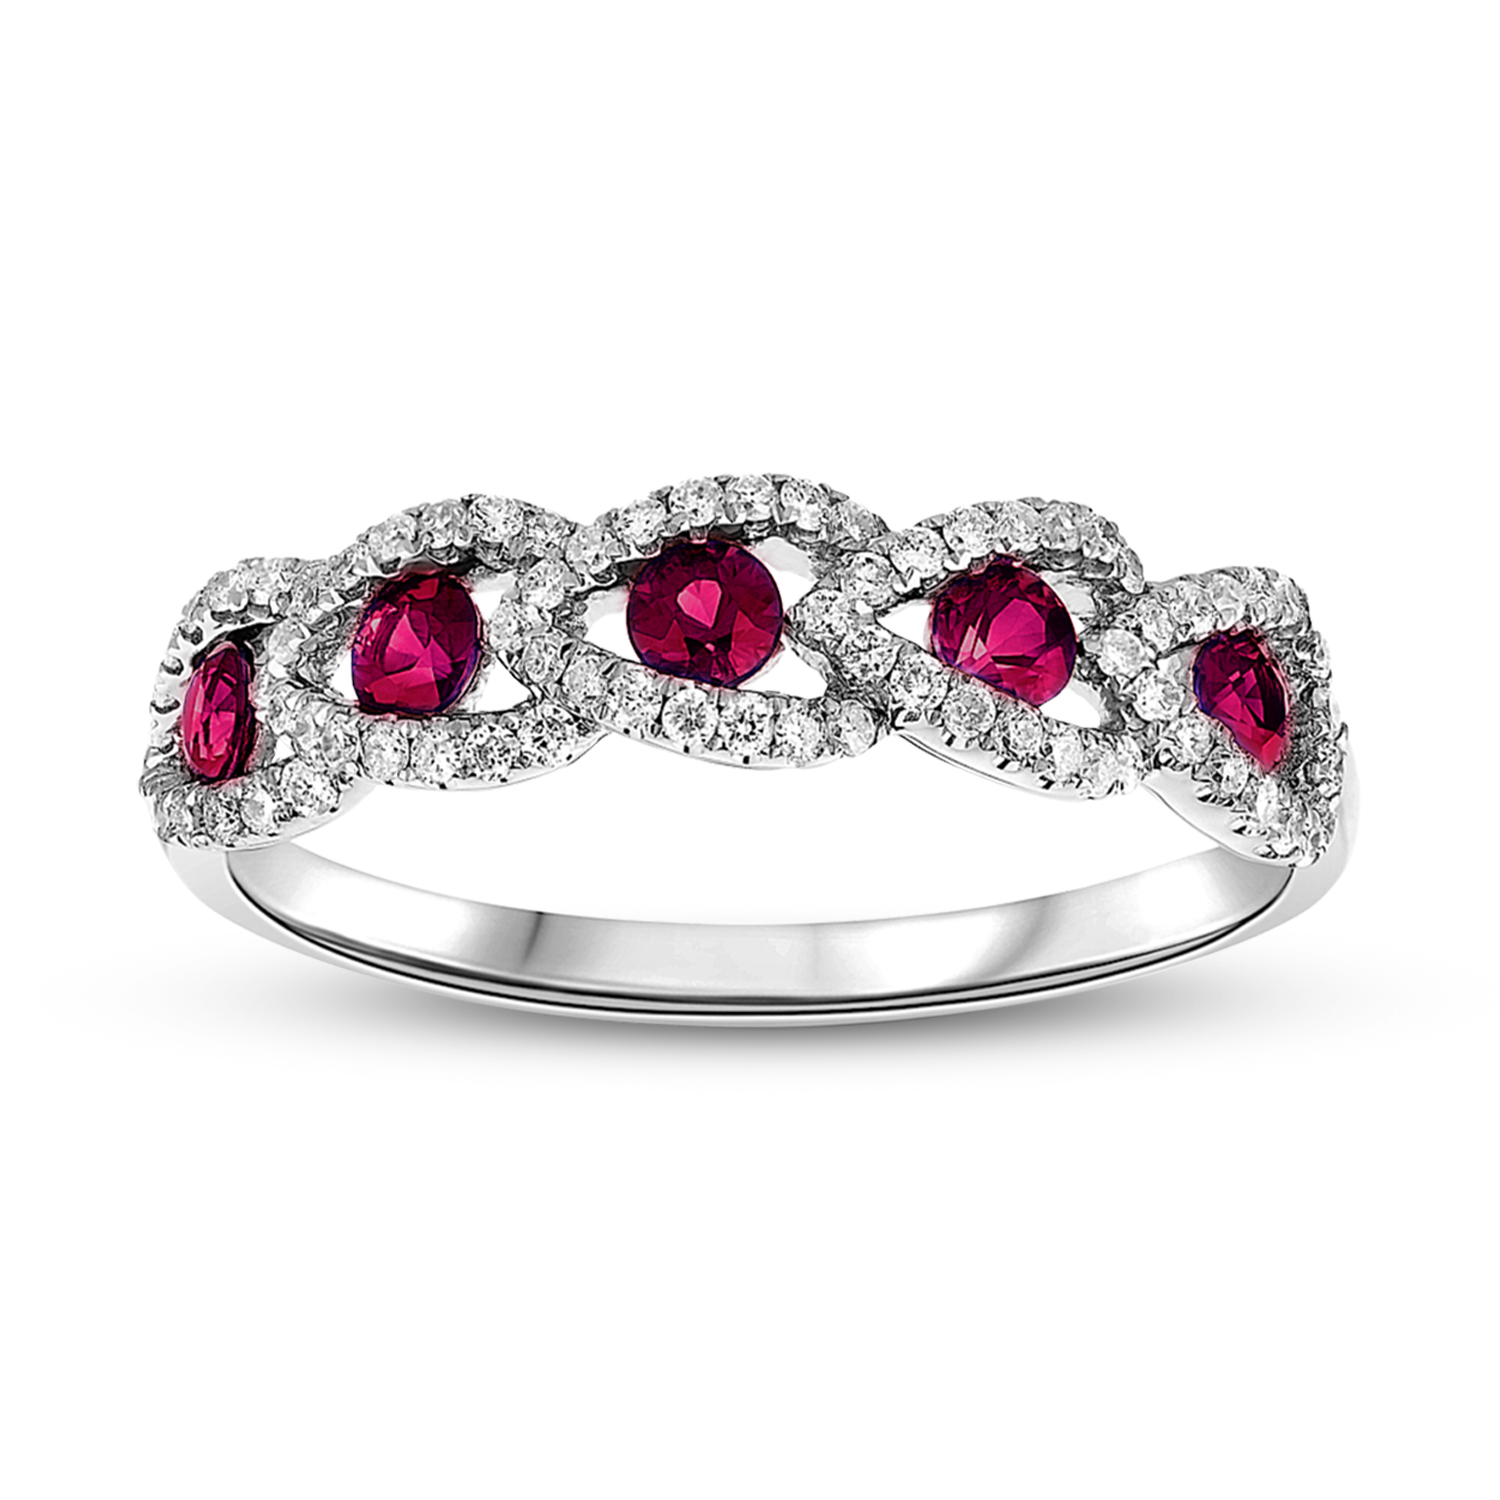 View 0.70ctw Diamond and Ruby Wedding Band in 18k Gold